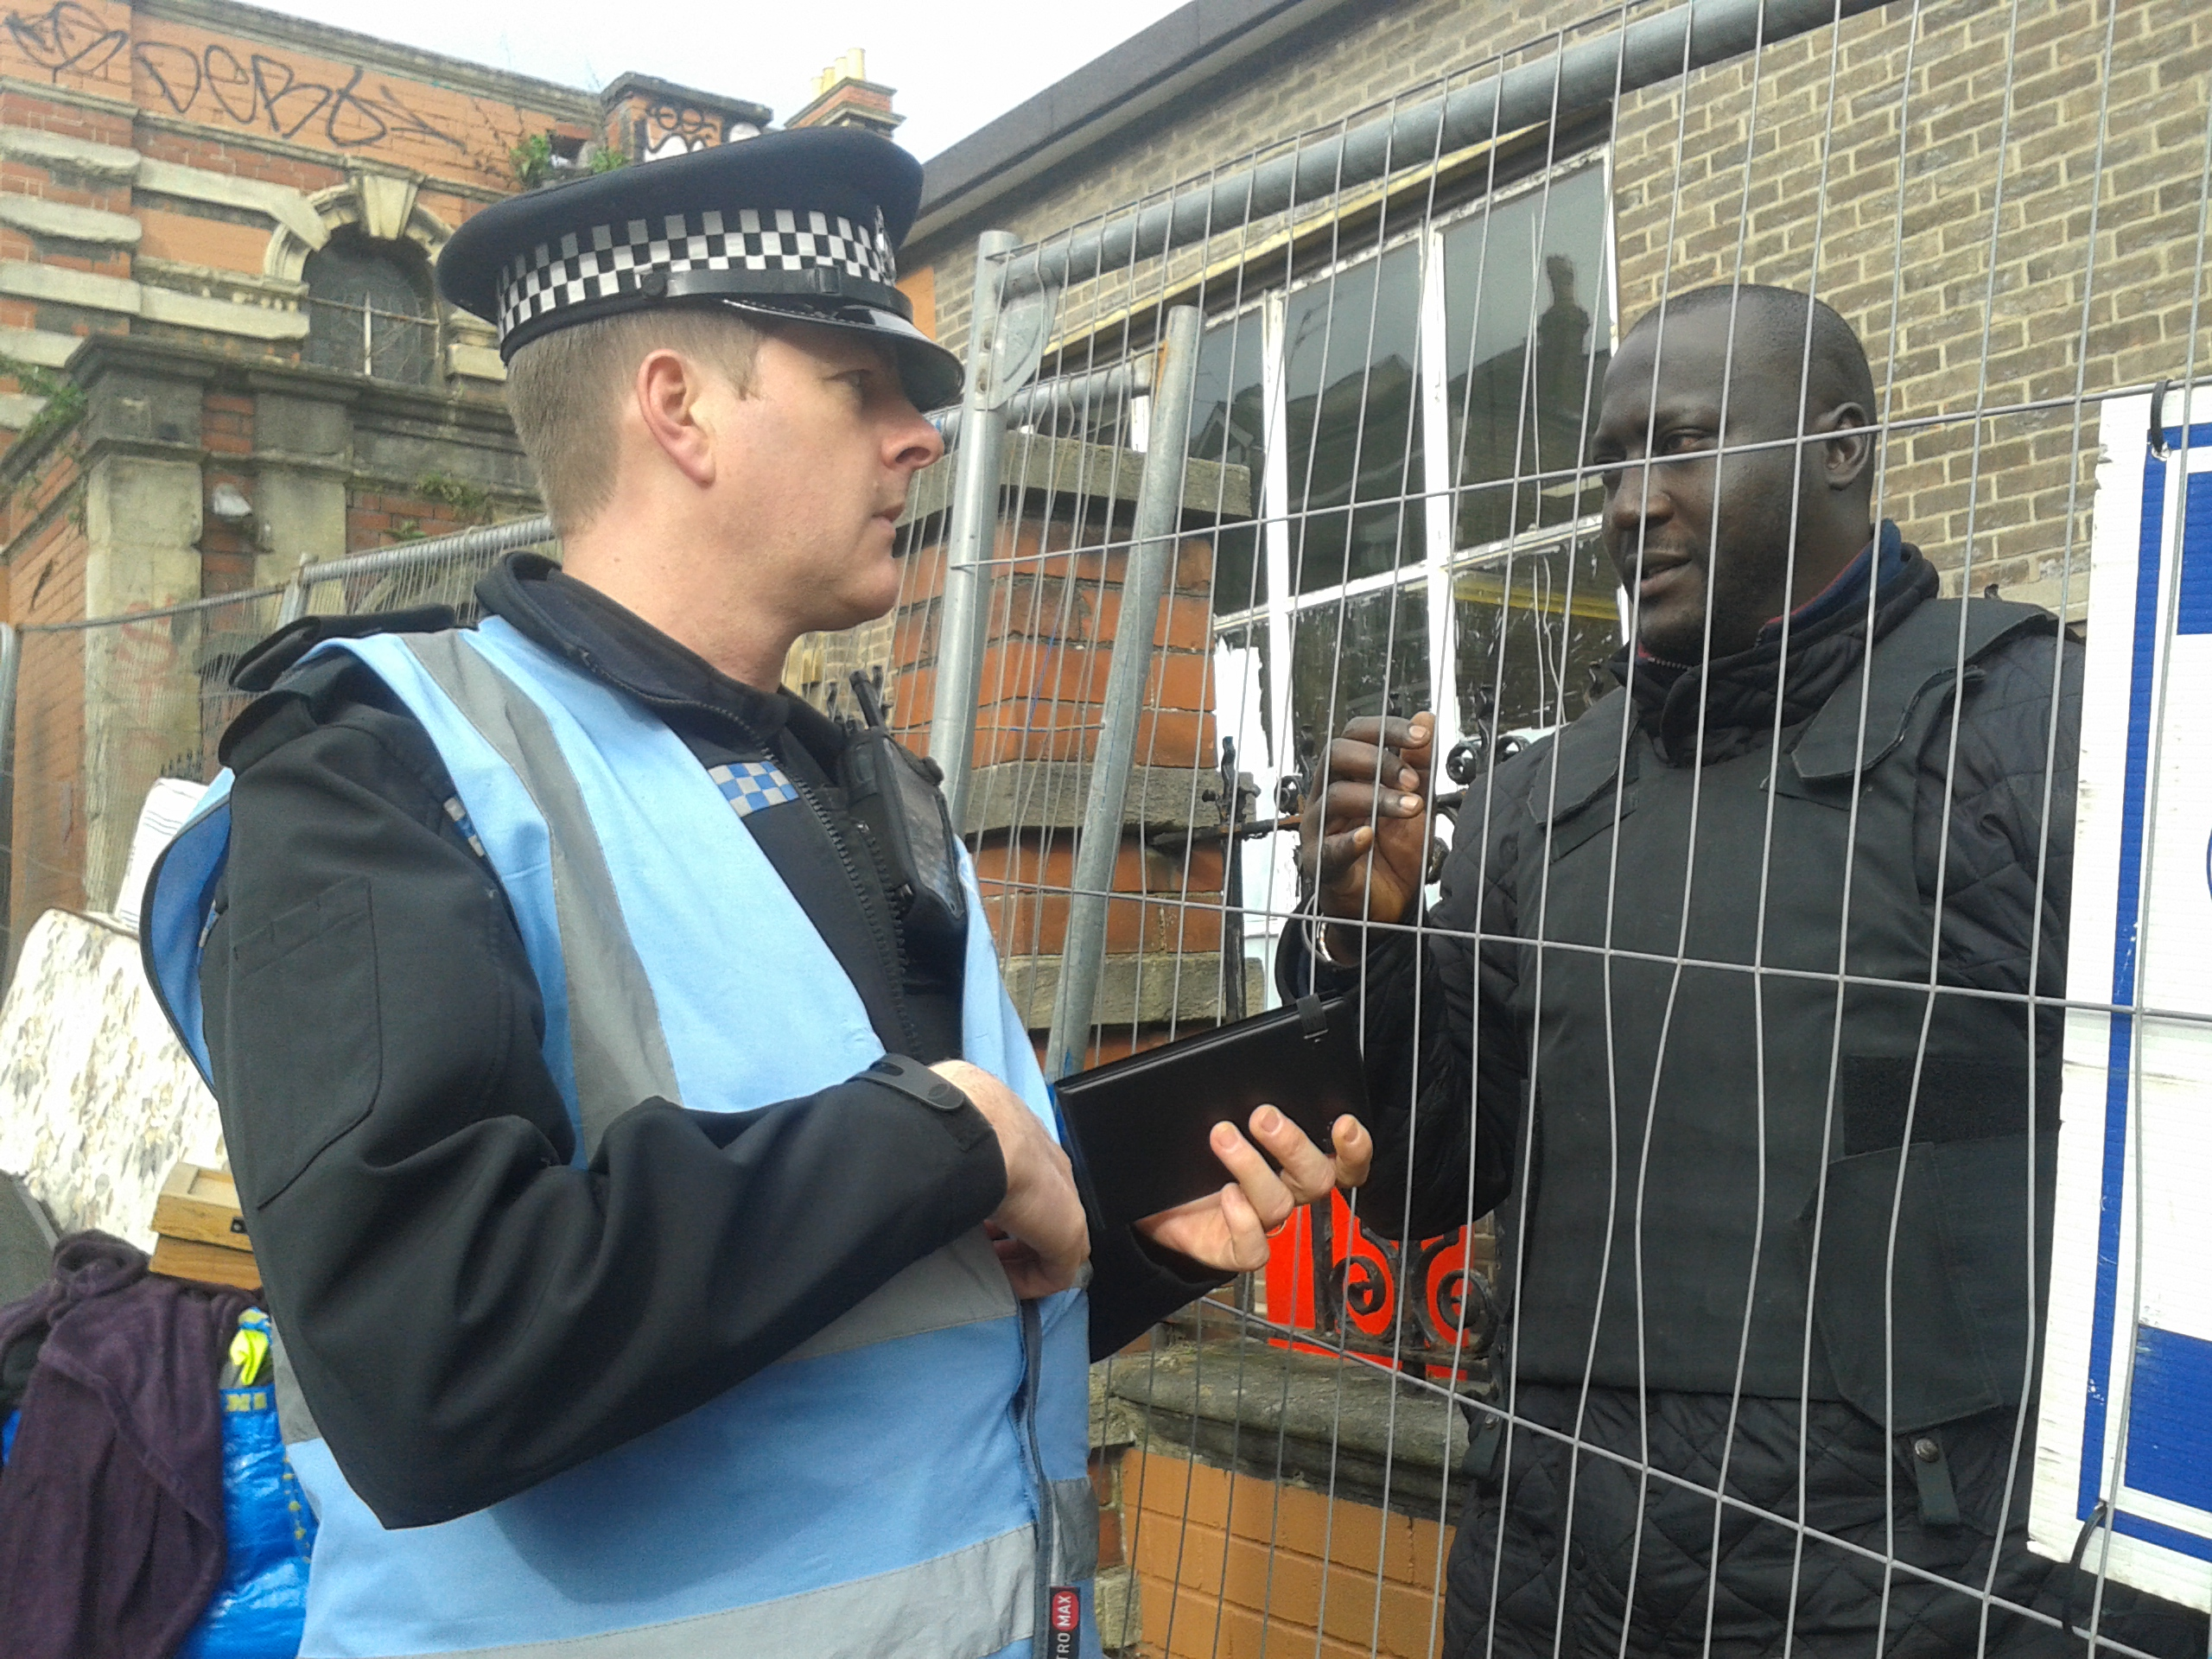 Police man talking to a person of colour though a fence